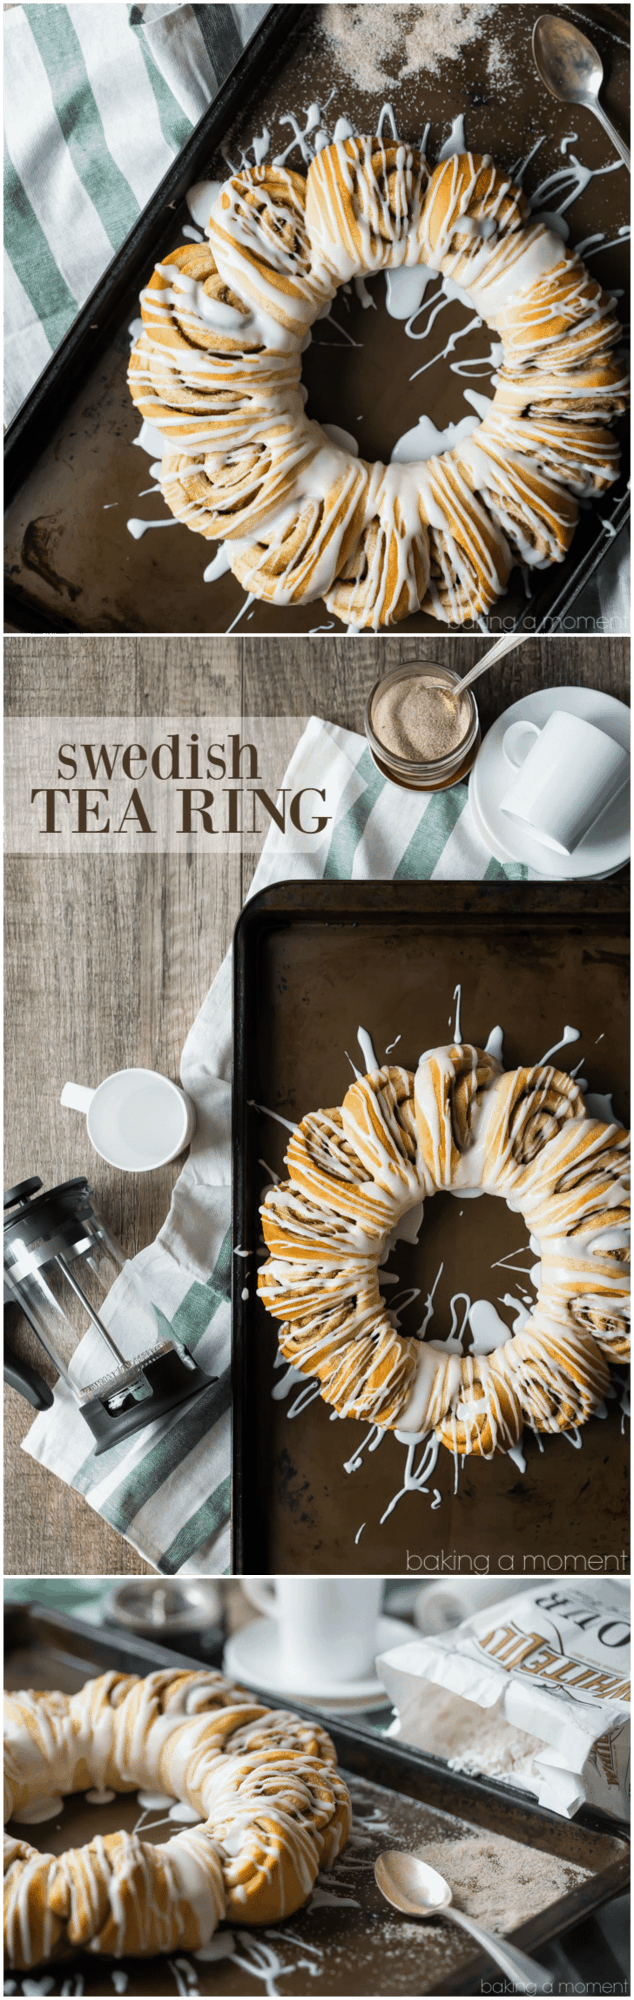 This Swedish tea ring has such a gorgeous presentation, and it's deceptively simple to create. Soft, sweet yeast dough swirled with cinnamon sugar and drizzled with a sweet glaze. Sort of like a pull-apart cinnamon roll bread. food breakfast cinnamon rolls #ad @whitelilyflour